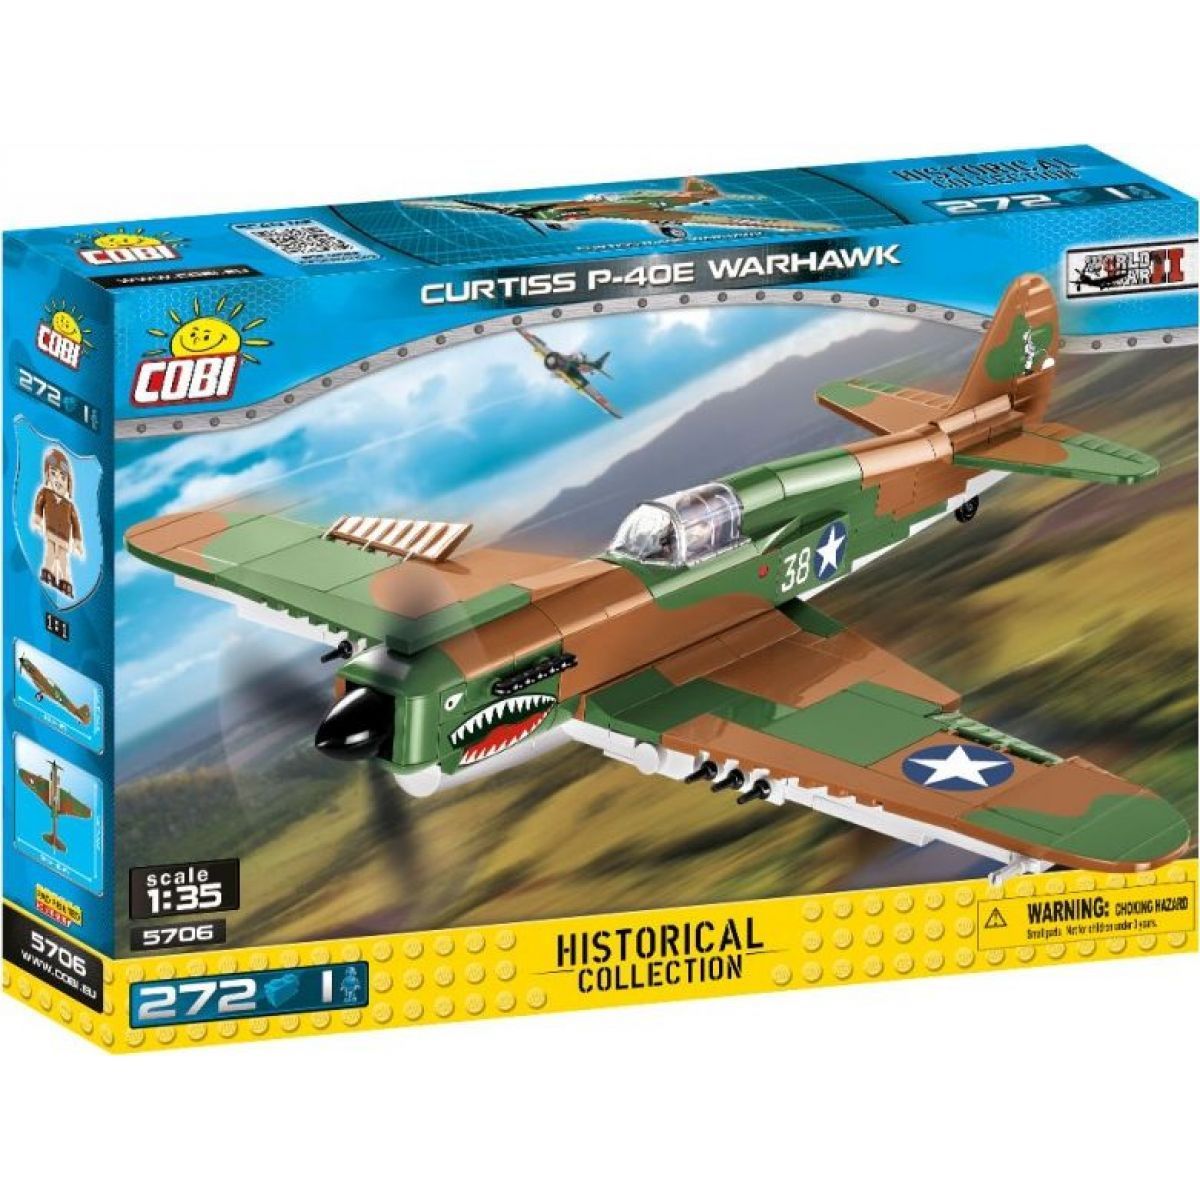 Cobi Malá armáda 5706 World of Tanks Tank Curtiss P-40E Warhawk